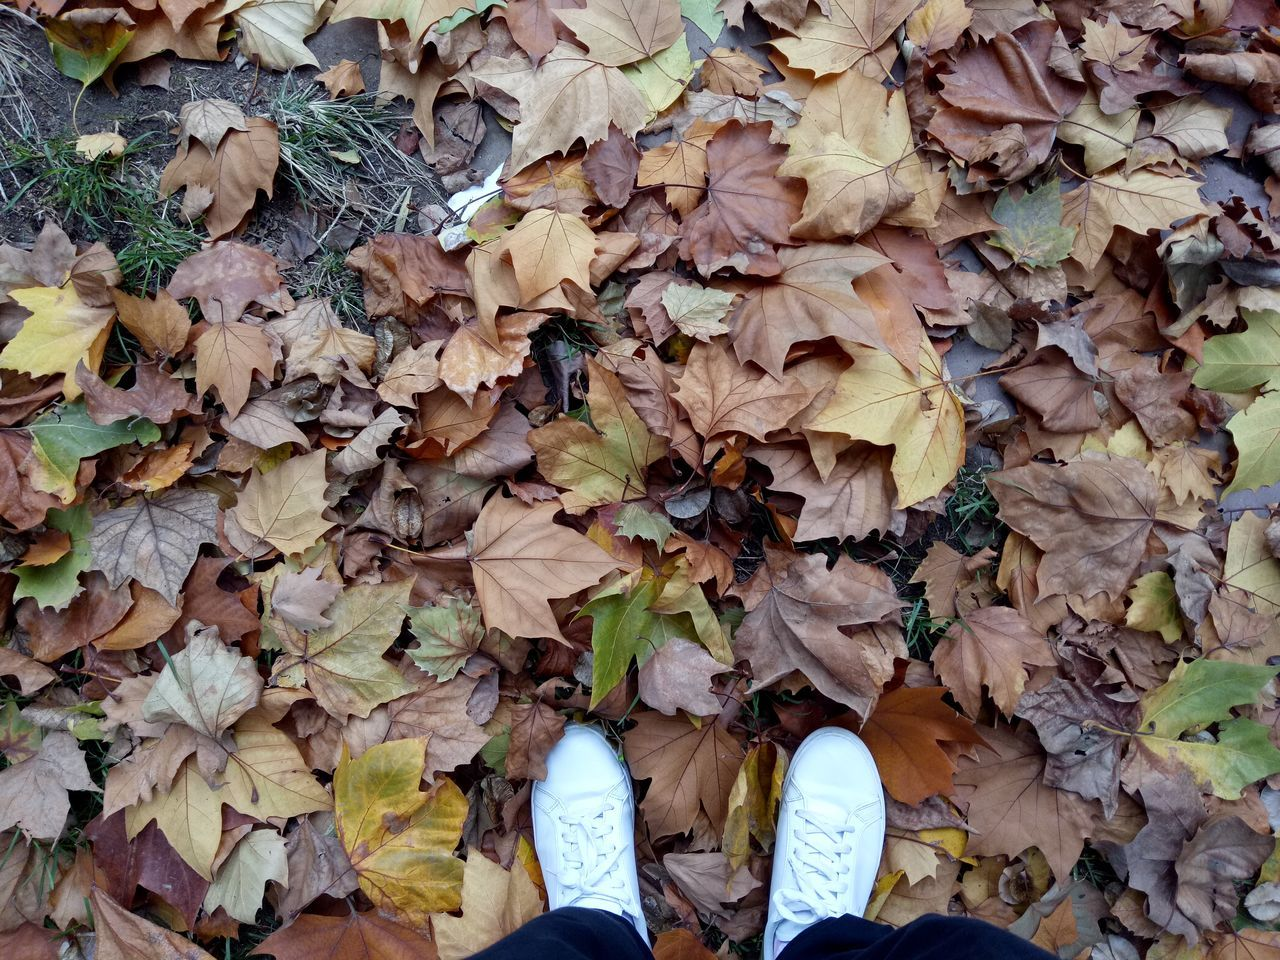 leaf, autumn, change, dry, low section, human leg, leaves, shoe, real people, fallen, standing, outdoors, day, nature, high angle view, one person, men, human body part, maple leaf, beauty in nature, close-up, maple, people